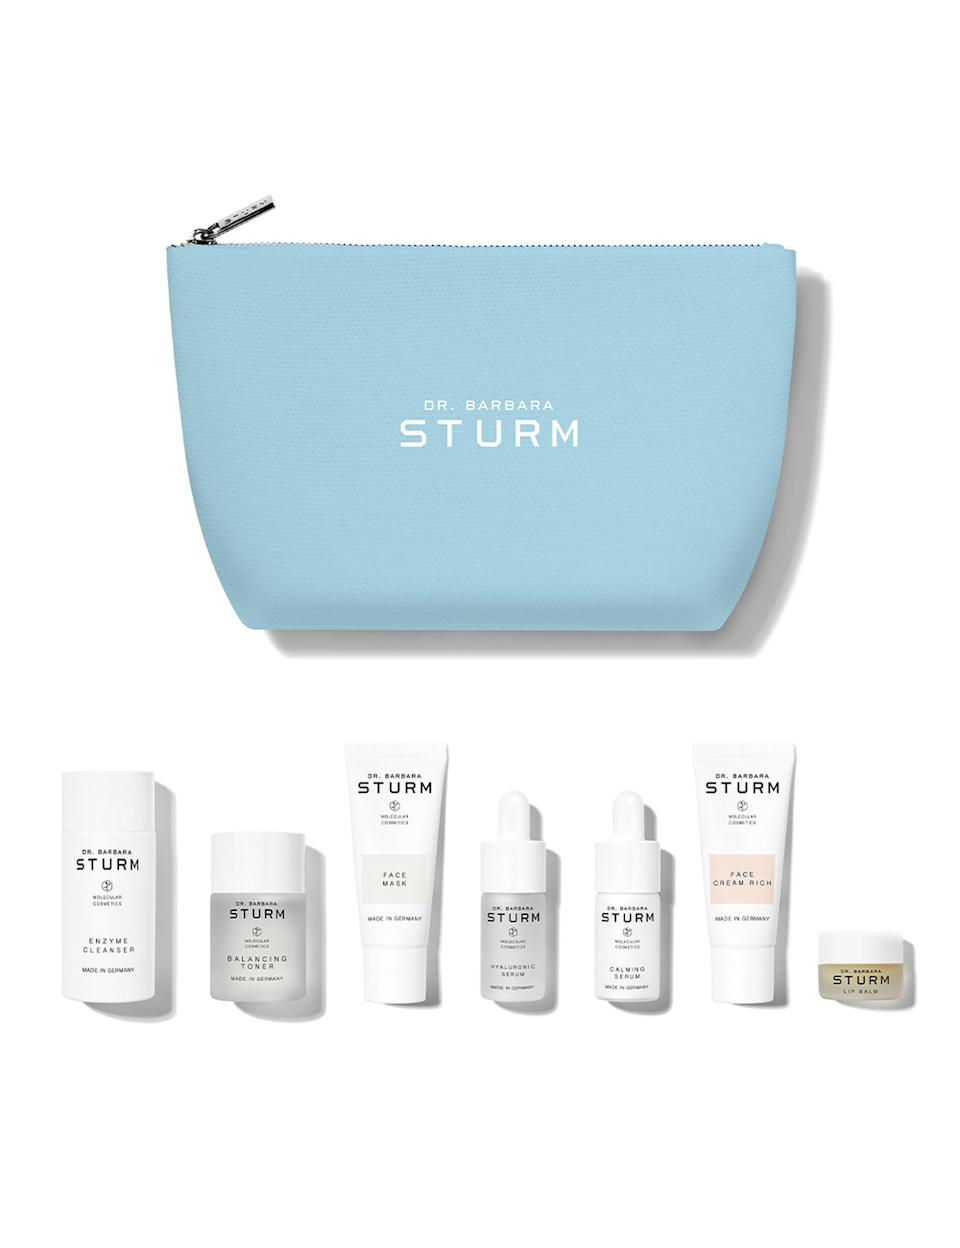 """<strong><h2>Dr. Barbara Sturm's Winter Kit</h2></strong><br>""""During this pandemic, I've had more trouble with acne than ever. I get it during my period and when I'm particularly stressed (hello,<a href=""""https://www.refinery29.com/en-us/2020/09/10027052/what-is-election-stress-disorder-relief"""" rel=""""nofollow noopener"""" target=""""_blank"""" data-ylk=""""slk:2020 election,"""" class=""""link rapid-noclick-resp""""> 2020 election,</a> I see you). Wearing a mask around my chin, right where my breakouts tend to occur, doesn't help. But this kit has. The products – which are cruelty-, fragrance- and paraben-free – arrived right when <a href=""""https://www.refinery29.com/en-us/2020/07/9924407/maskne-help-acne-from-face-mask"""" rel=""""nofollow noopener"""" target=""""_blank"""" data-ylk=""""slk:my maskne"""" class=""""link rapid-noclick-resp"""">my maskne</a> was at its most treacherous, and the hero products, including the<a href=""""https://www.drsturm.com/enzyme-cleanser/"""" rel=""""nofollow noopener"""" target=""""_blank"""" data-ylk=""""slk:enzyme cleanser"""" class=""""link rapid-noclick-resp""""> enzyme cleanser</a> and <a href=""""https://www.drsturm.com/mini-calming-serum/"""" rel=""""nofollow noopener"""" target=""""_blank"""" data-ylk=""""slk:the calming serum"""" class=""""link rapid-noclick-resp"""">the calming serum</a>, cleared things up in less than a week. The lightweight serum in particular uses ingredients as such as Echium, and Sunflower Extract to help rebalance irritated skin and soothe redness."""" —<em> ML </em><br><br><strong>Dr. Barbara Sturm</strong> THE WINTER KIT, $, available at <a href=""""https://go.skimresources.com/?id=30283X879131&url=https%3A%2F%2Fwww.drsturm.com%2Fthe-winter-kit%2F"""" rel=""""nofollow noopener"""" target=""""_blank"""" data-ylk=""""slk:Dr. Barbara Sturm"""" class=""""link rapid-noclick-resp"""">Dr. Barbara Sturm</a>"""